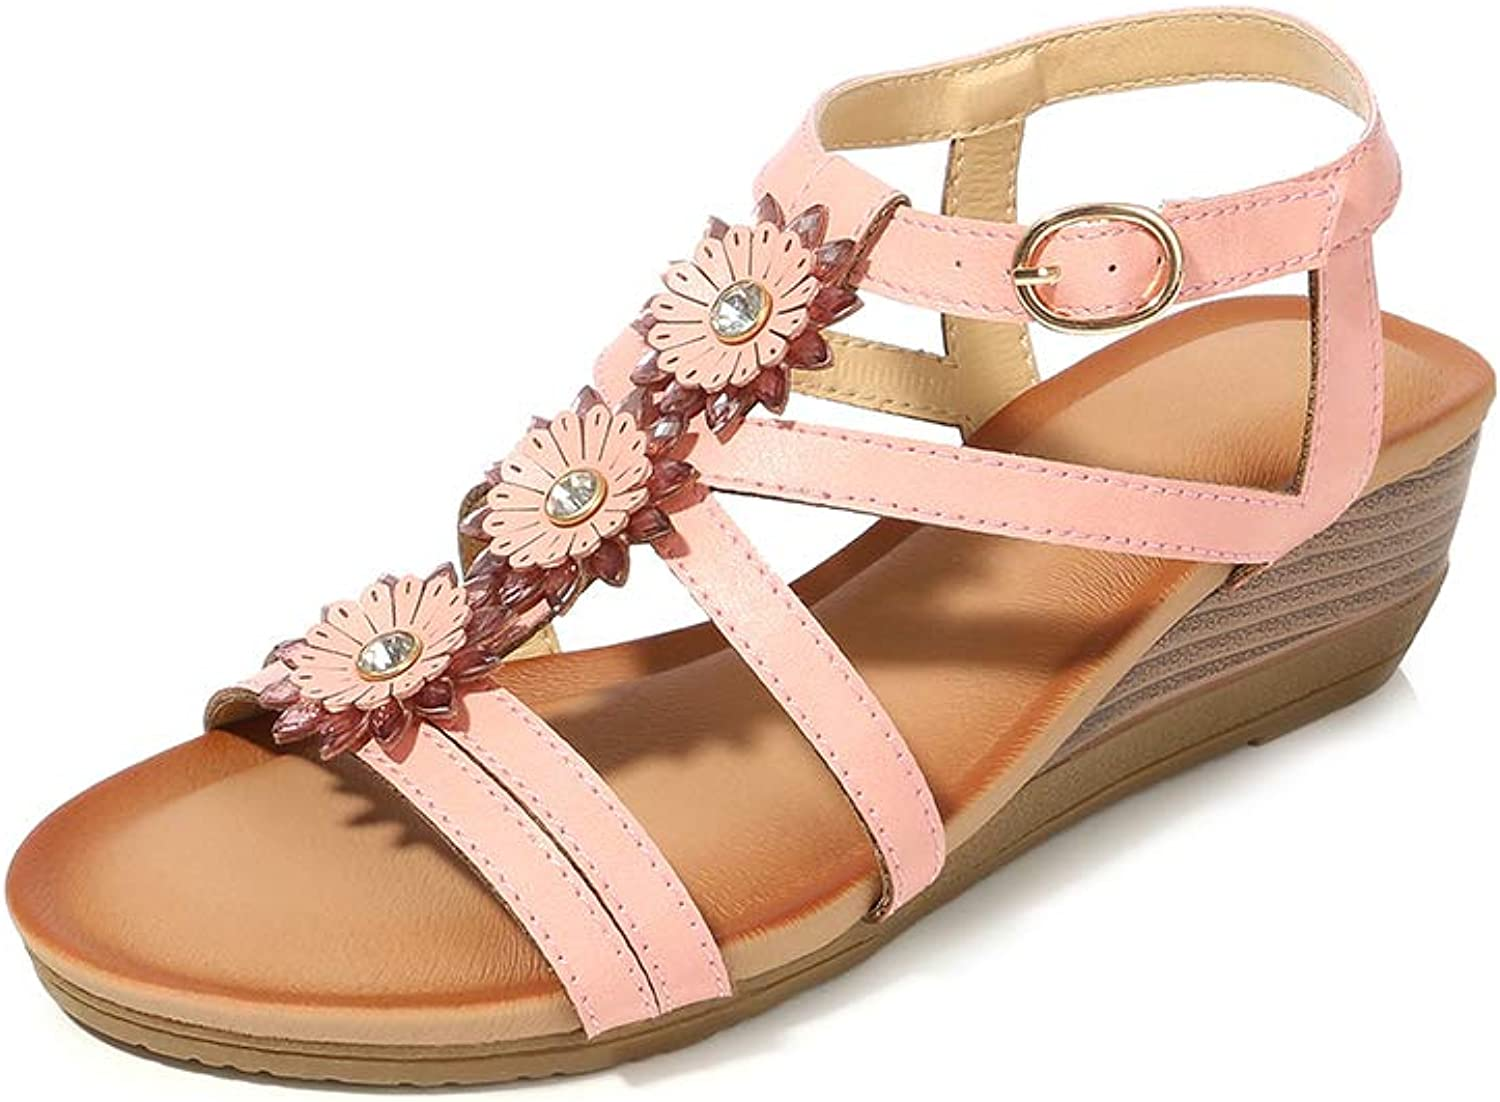 Navoku Womens Leather Ankle Strap Jeweled Floral Wedge Sandals